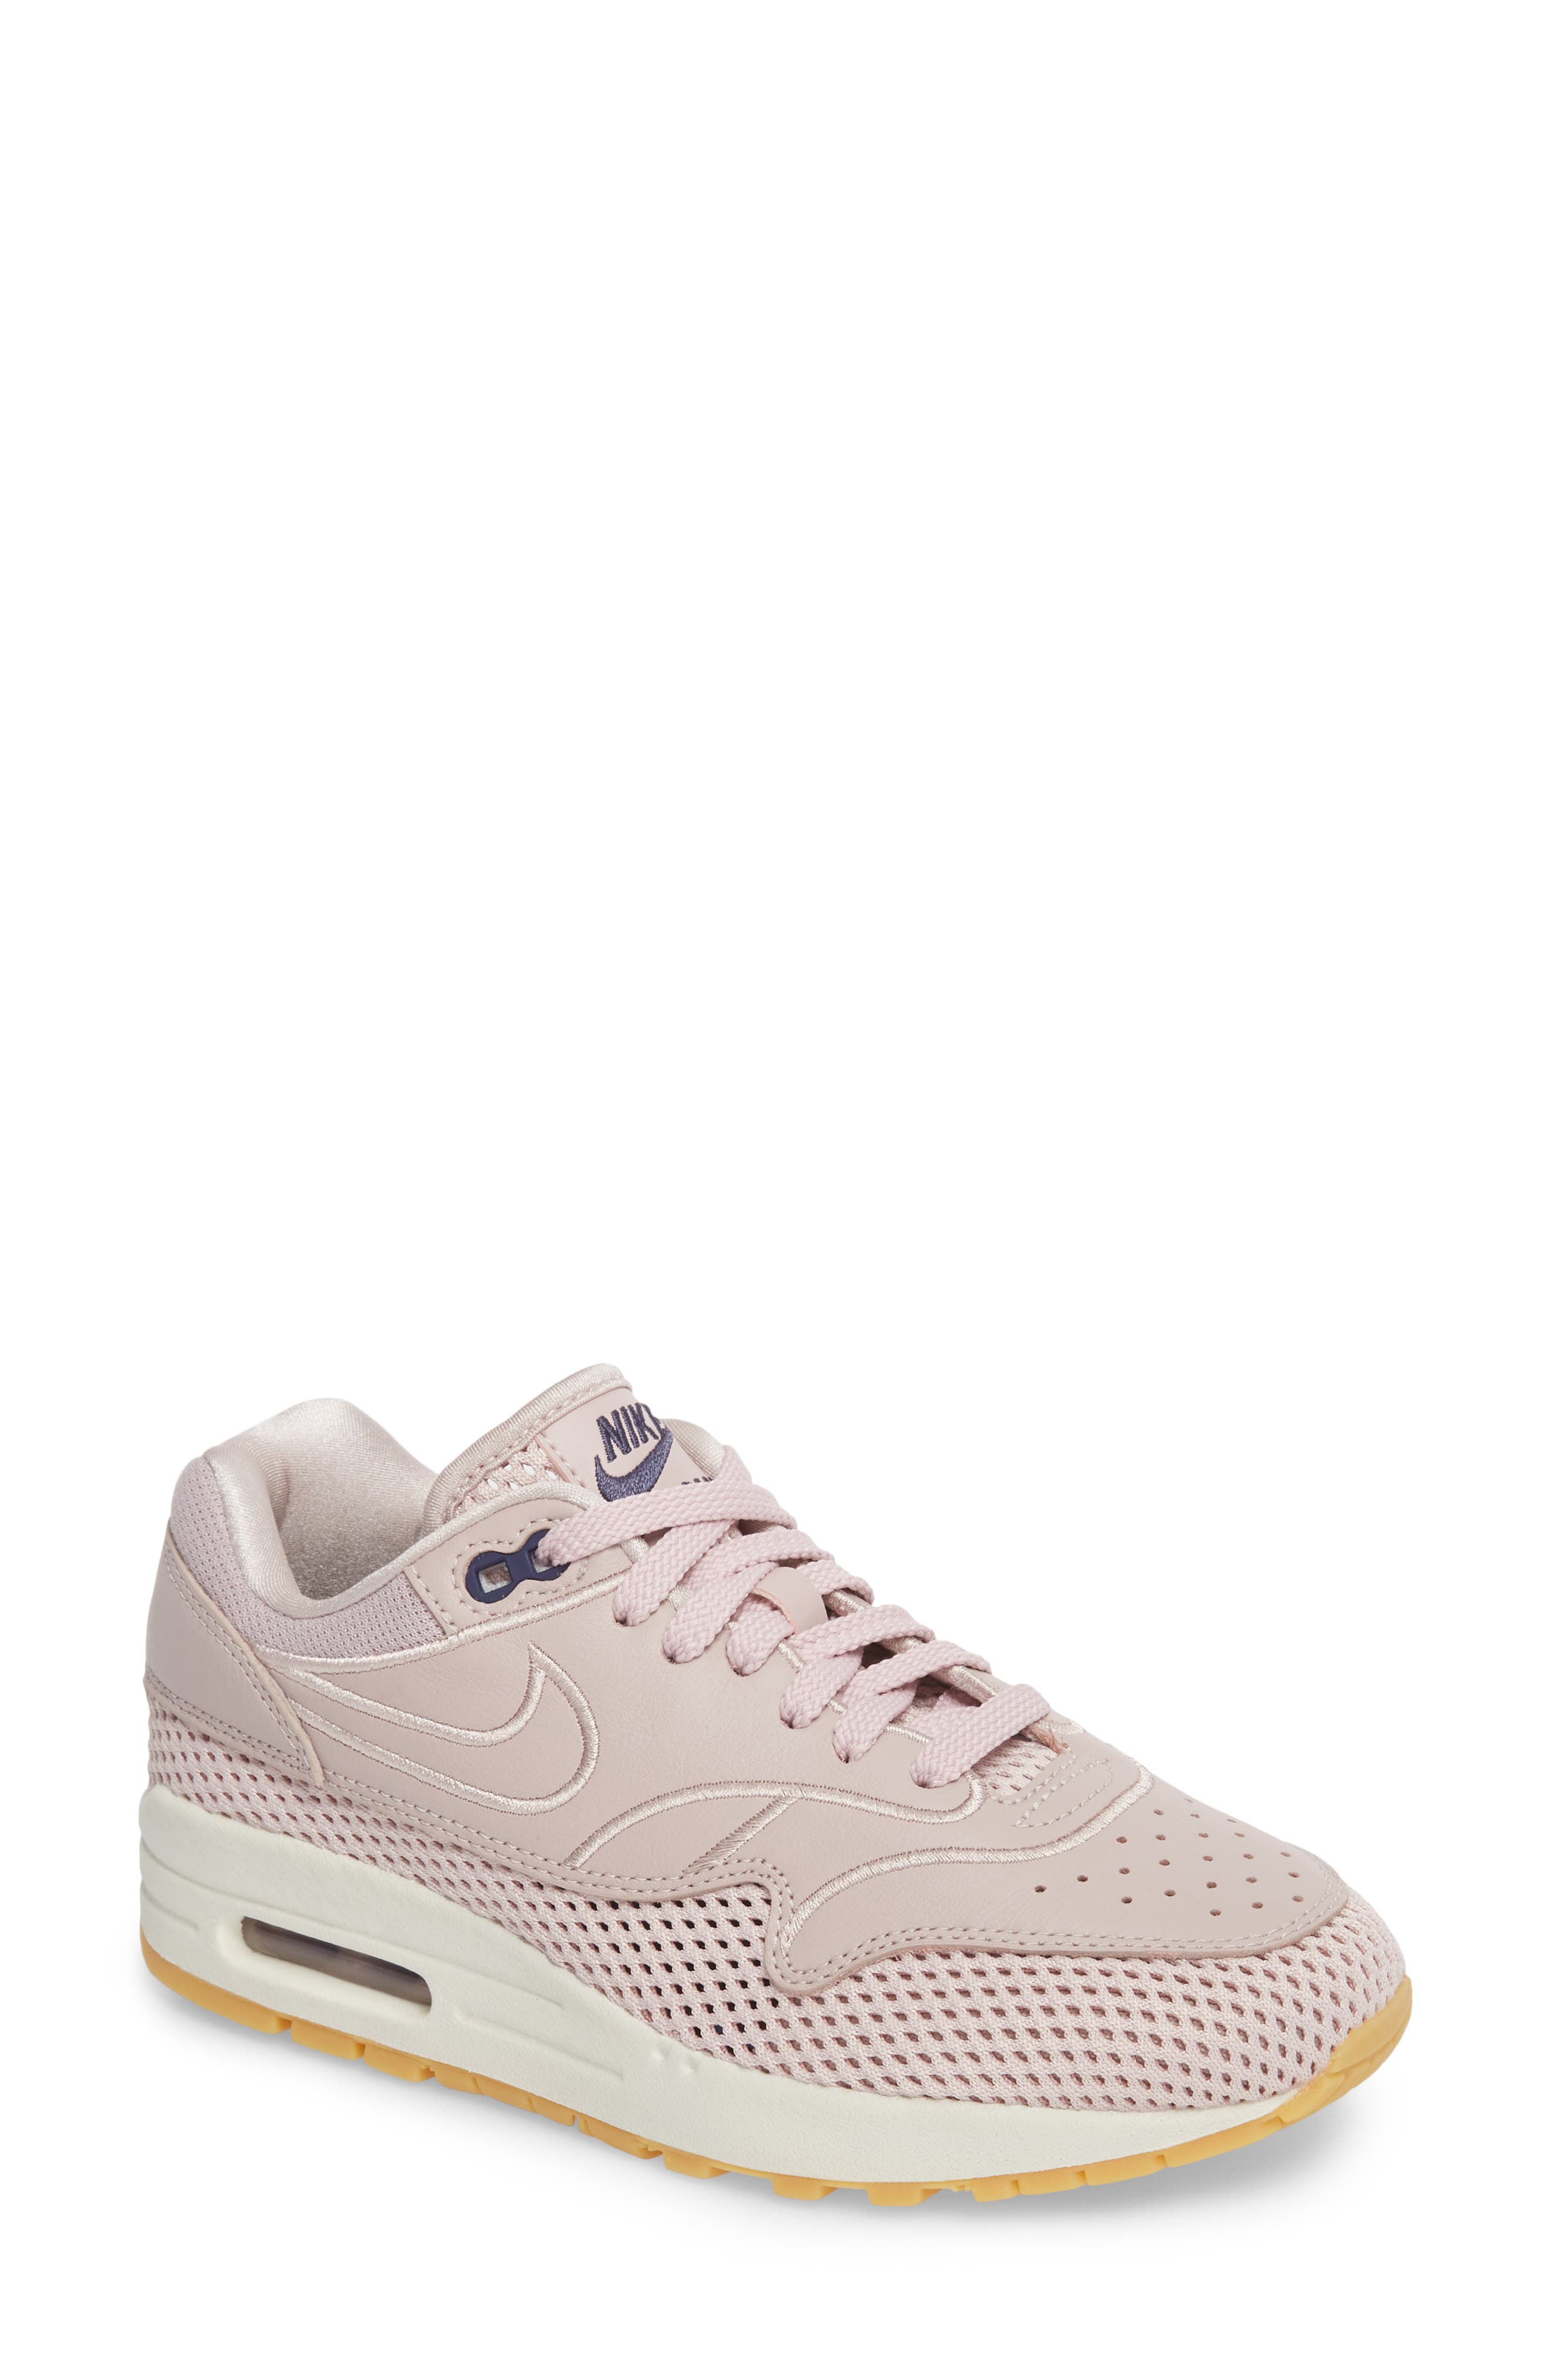 Air Max 1 SI Sneaker,                             Main thumbnail 1, color,                             PARTICLE ROSE/ PARTICLE ROSE